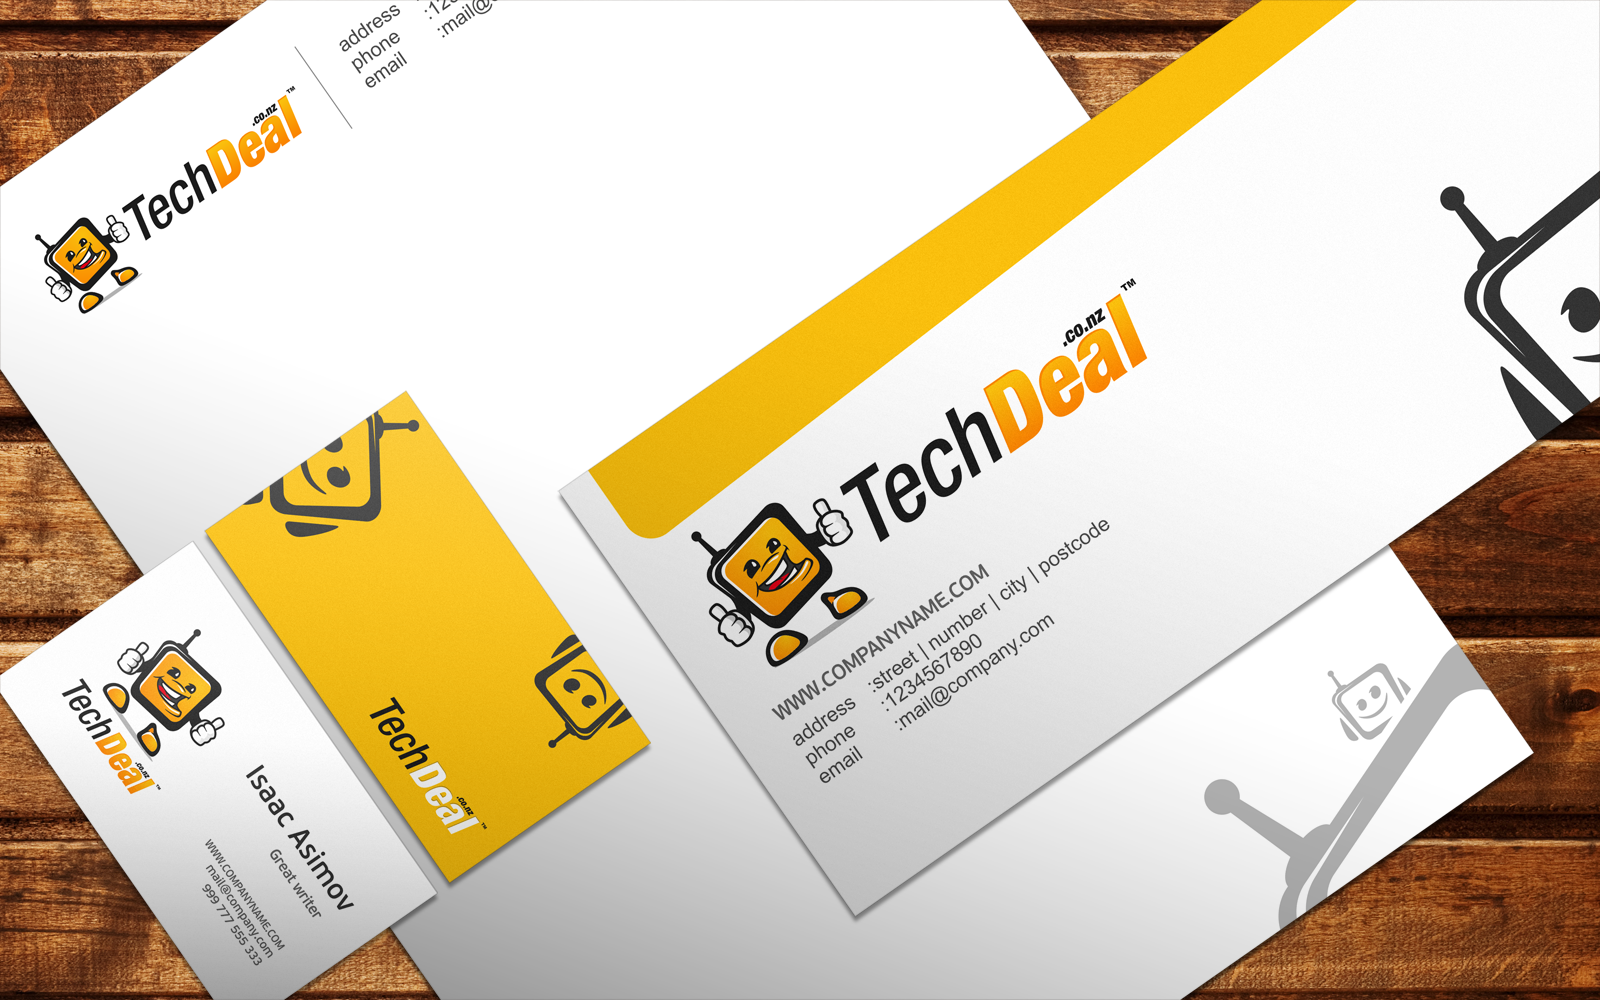 Help TechDeal.co.nz with a new logo